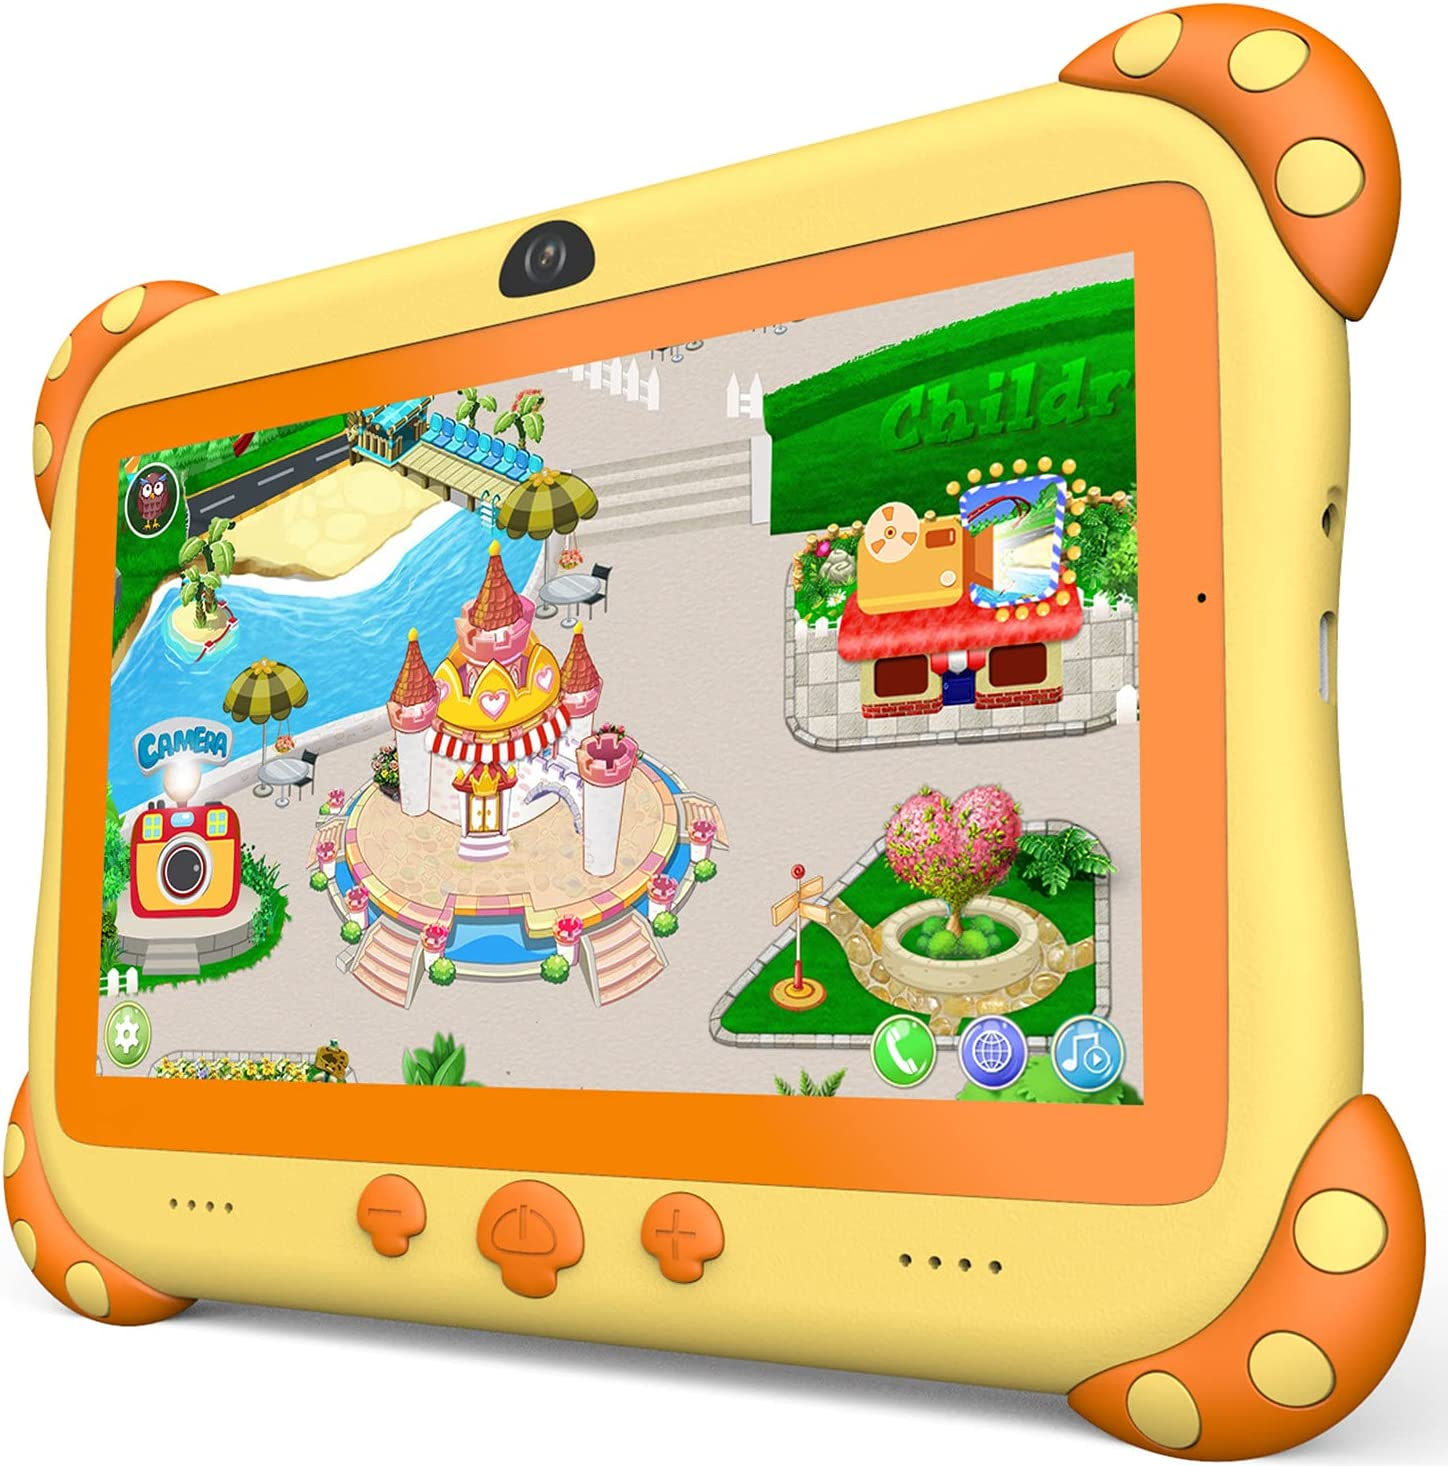 Kids Tablet 7 inch WiFi Kids Tablets 32G Android Tablet for Kids Dual Camera Educational Games Parental Control, Toddler Tablet with Kids Software Pre-Installed Kid-Proof YouTube Netflix (Yellow)